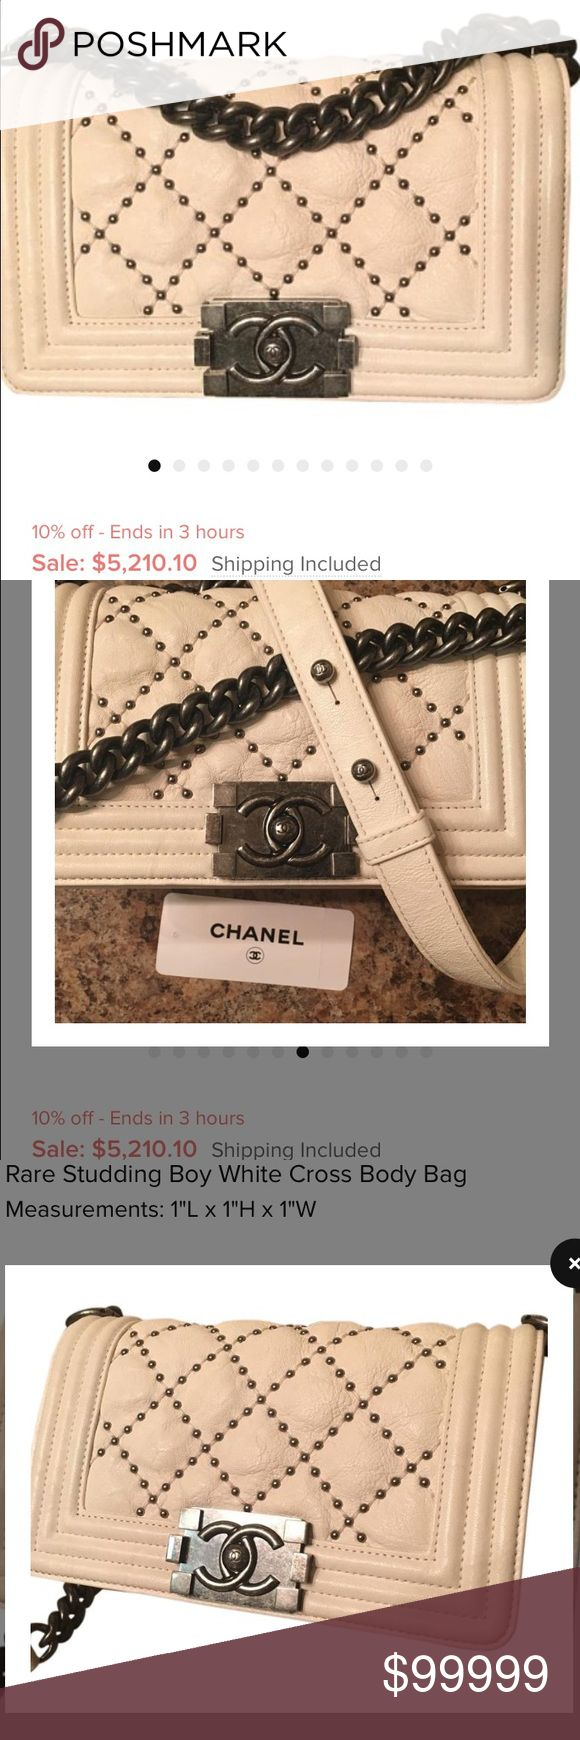 CHANEL BOY BAG Authentic Chanel boy bag SALE!!! CHANEL Bags Crossbody Bags